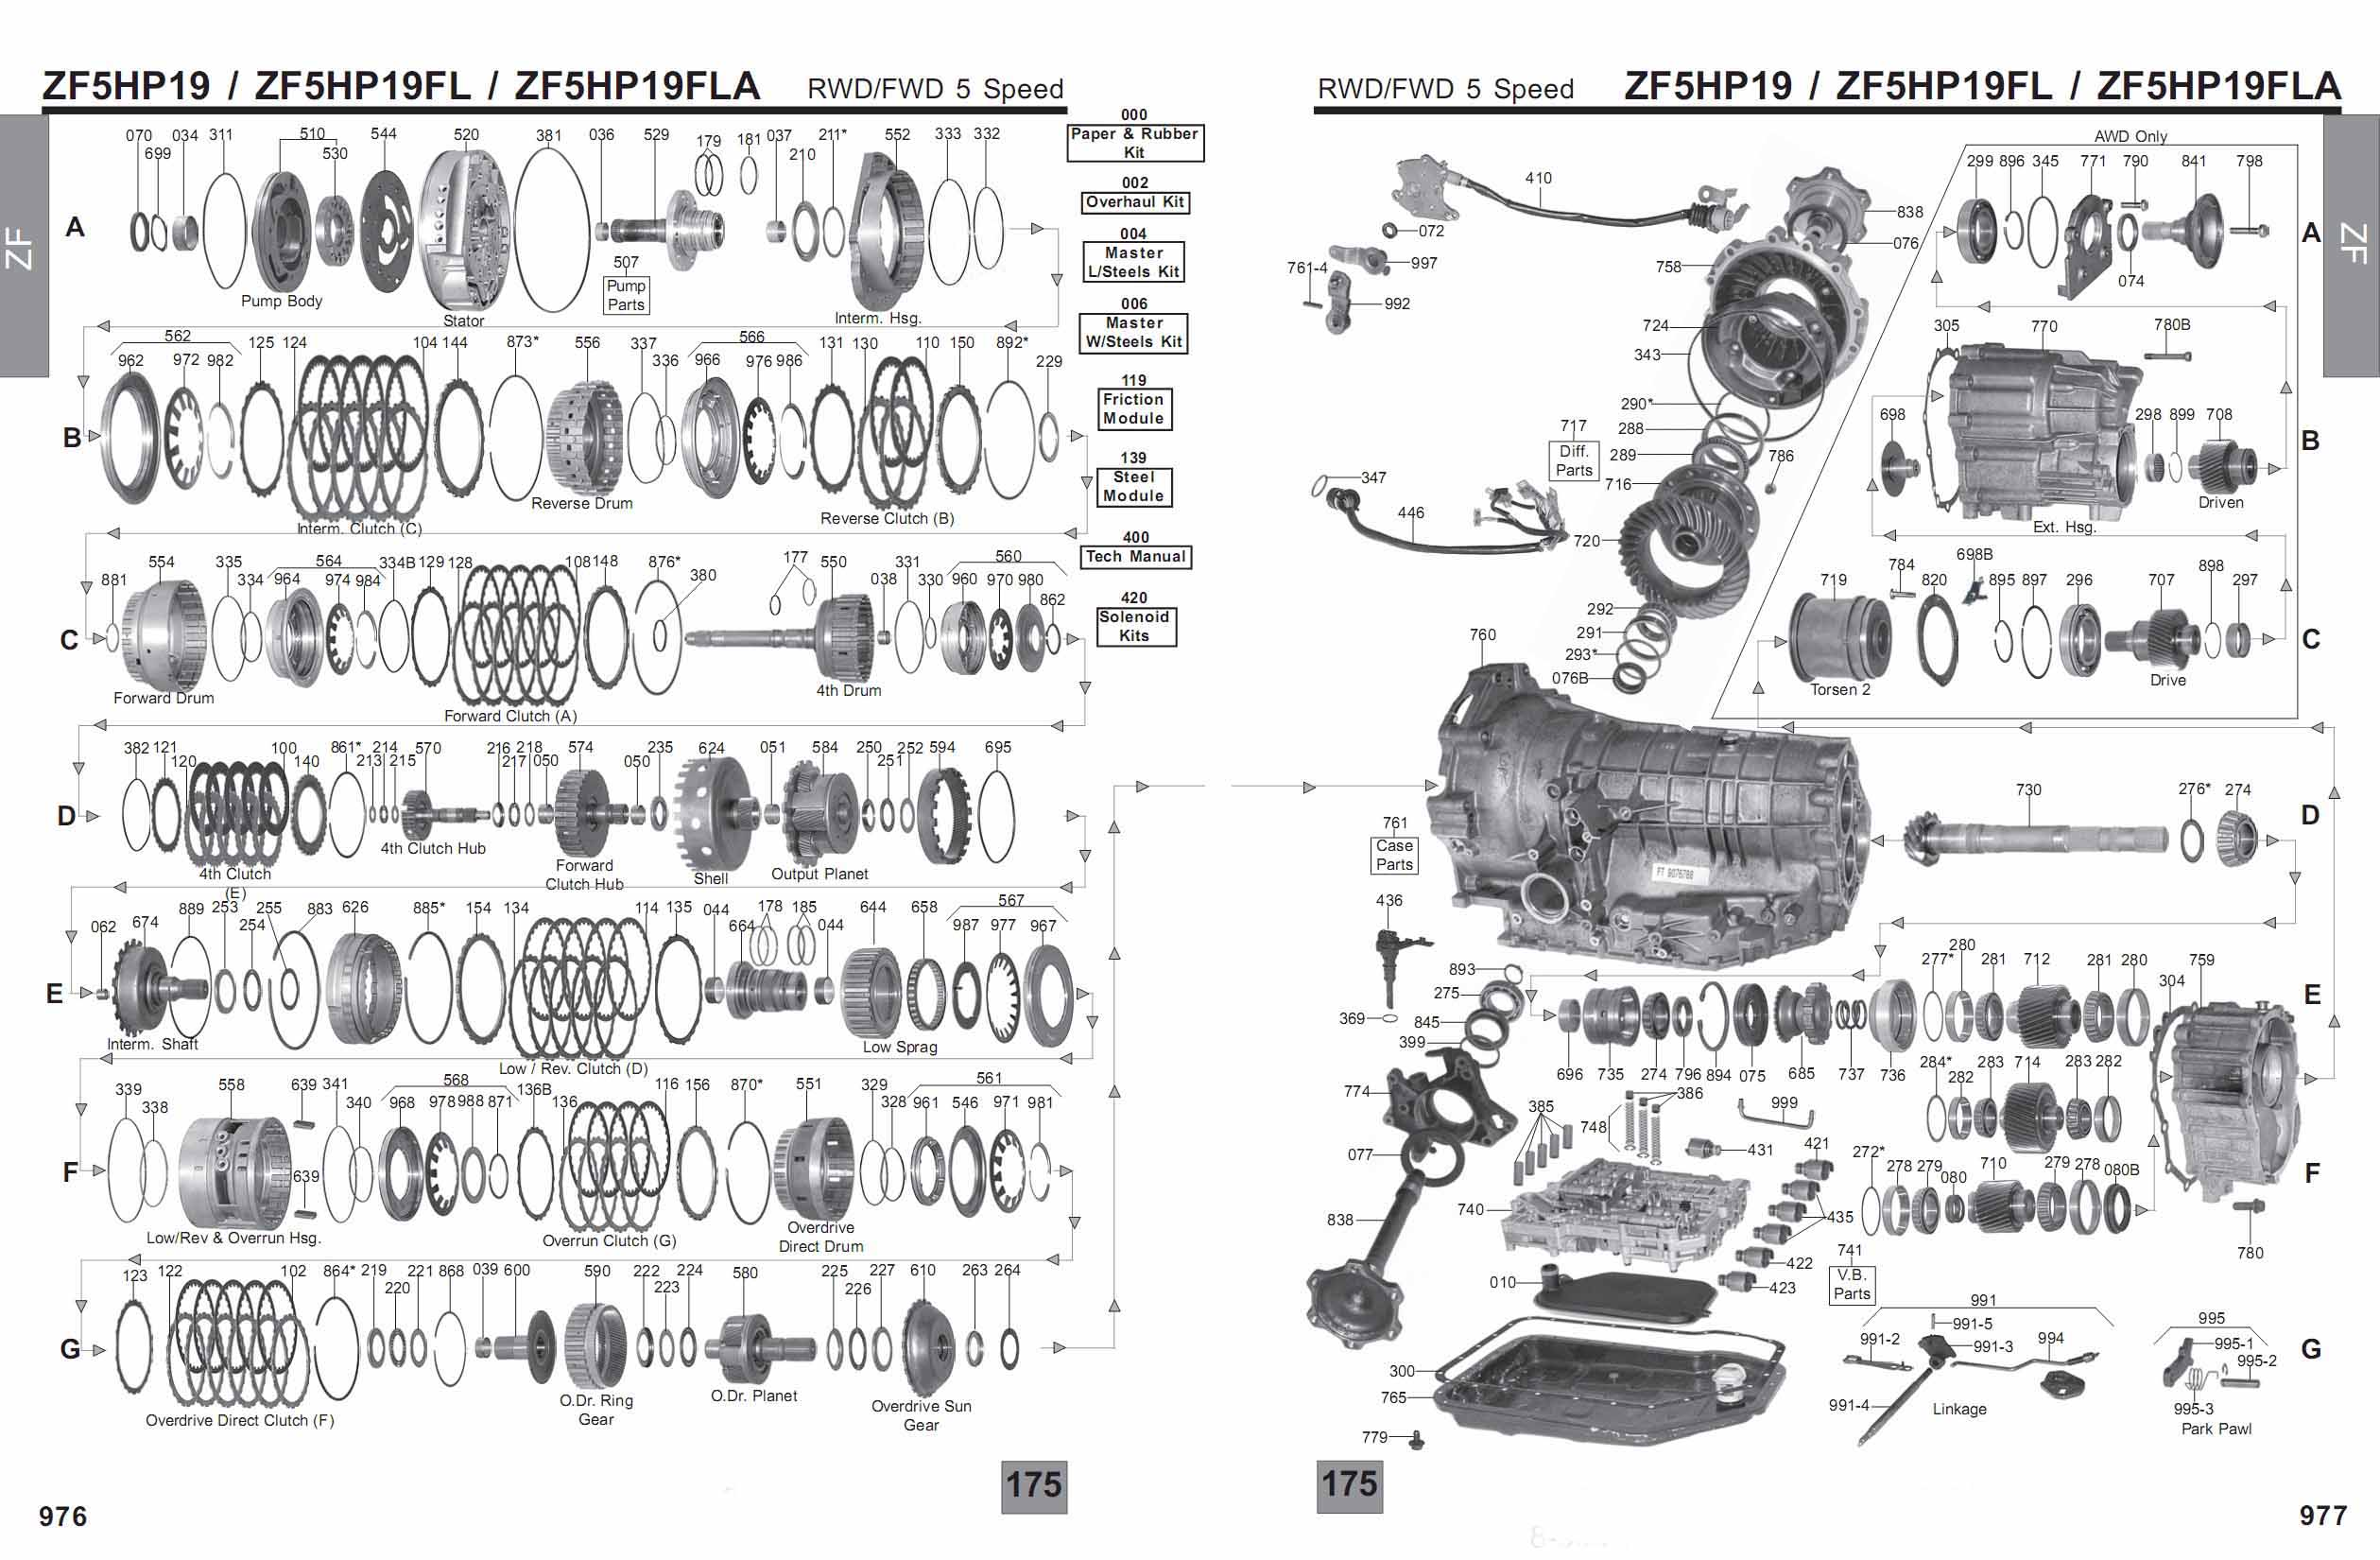 Transmission Repair Manuals Zf 5hp19